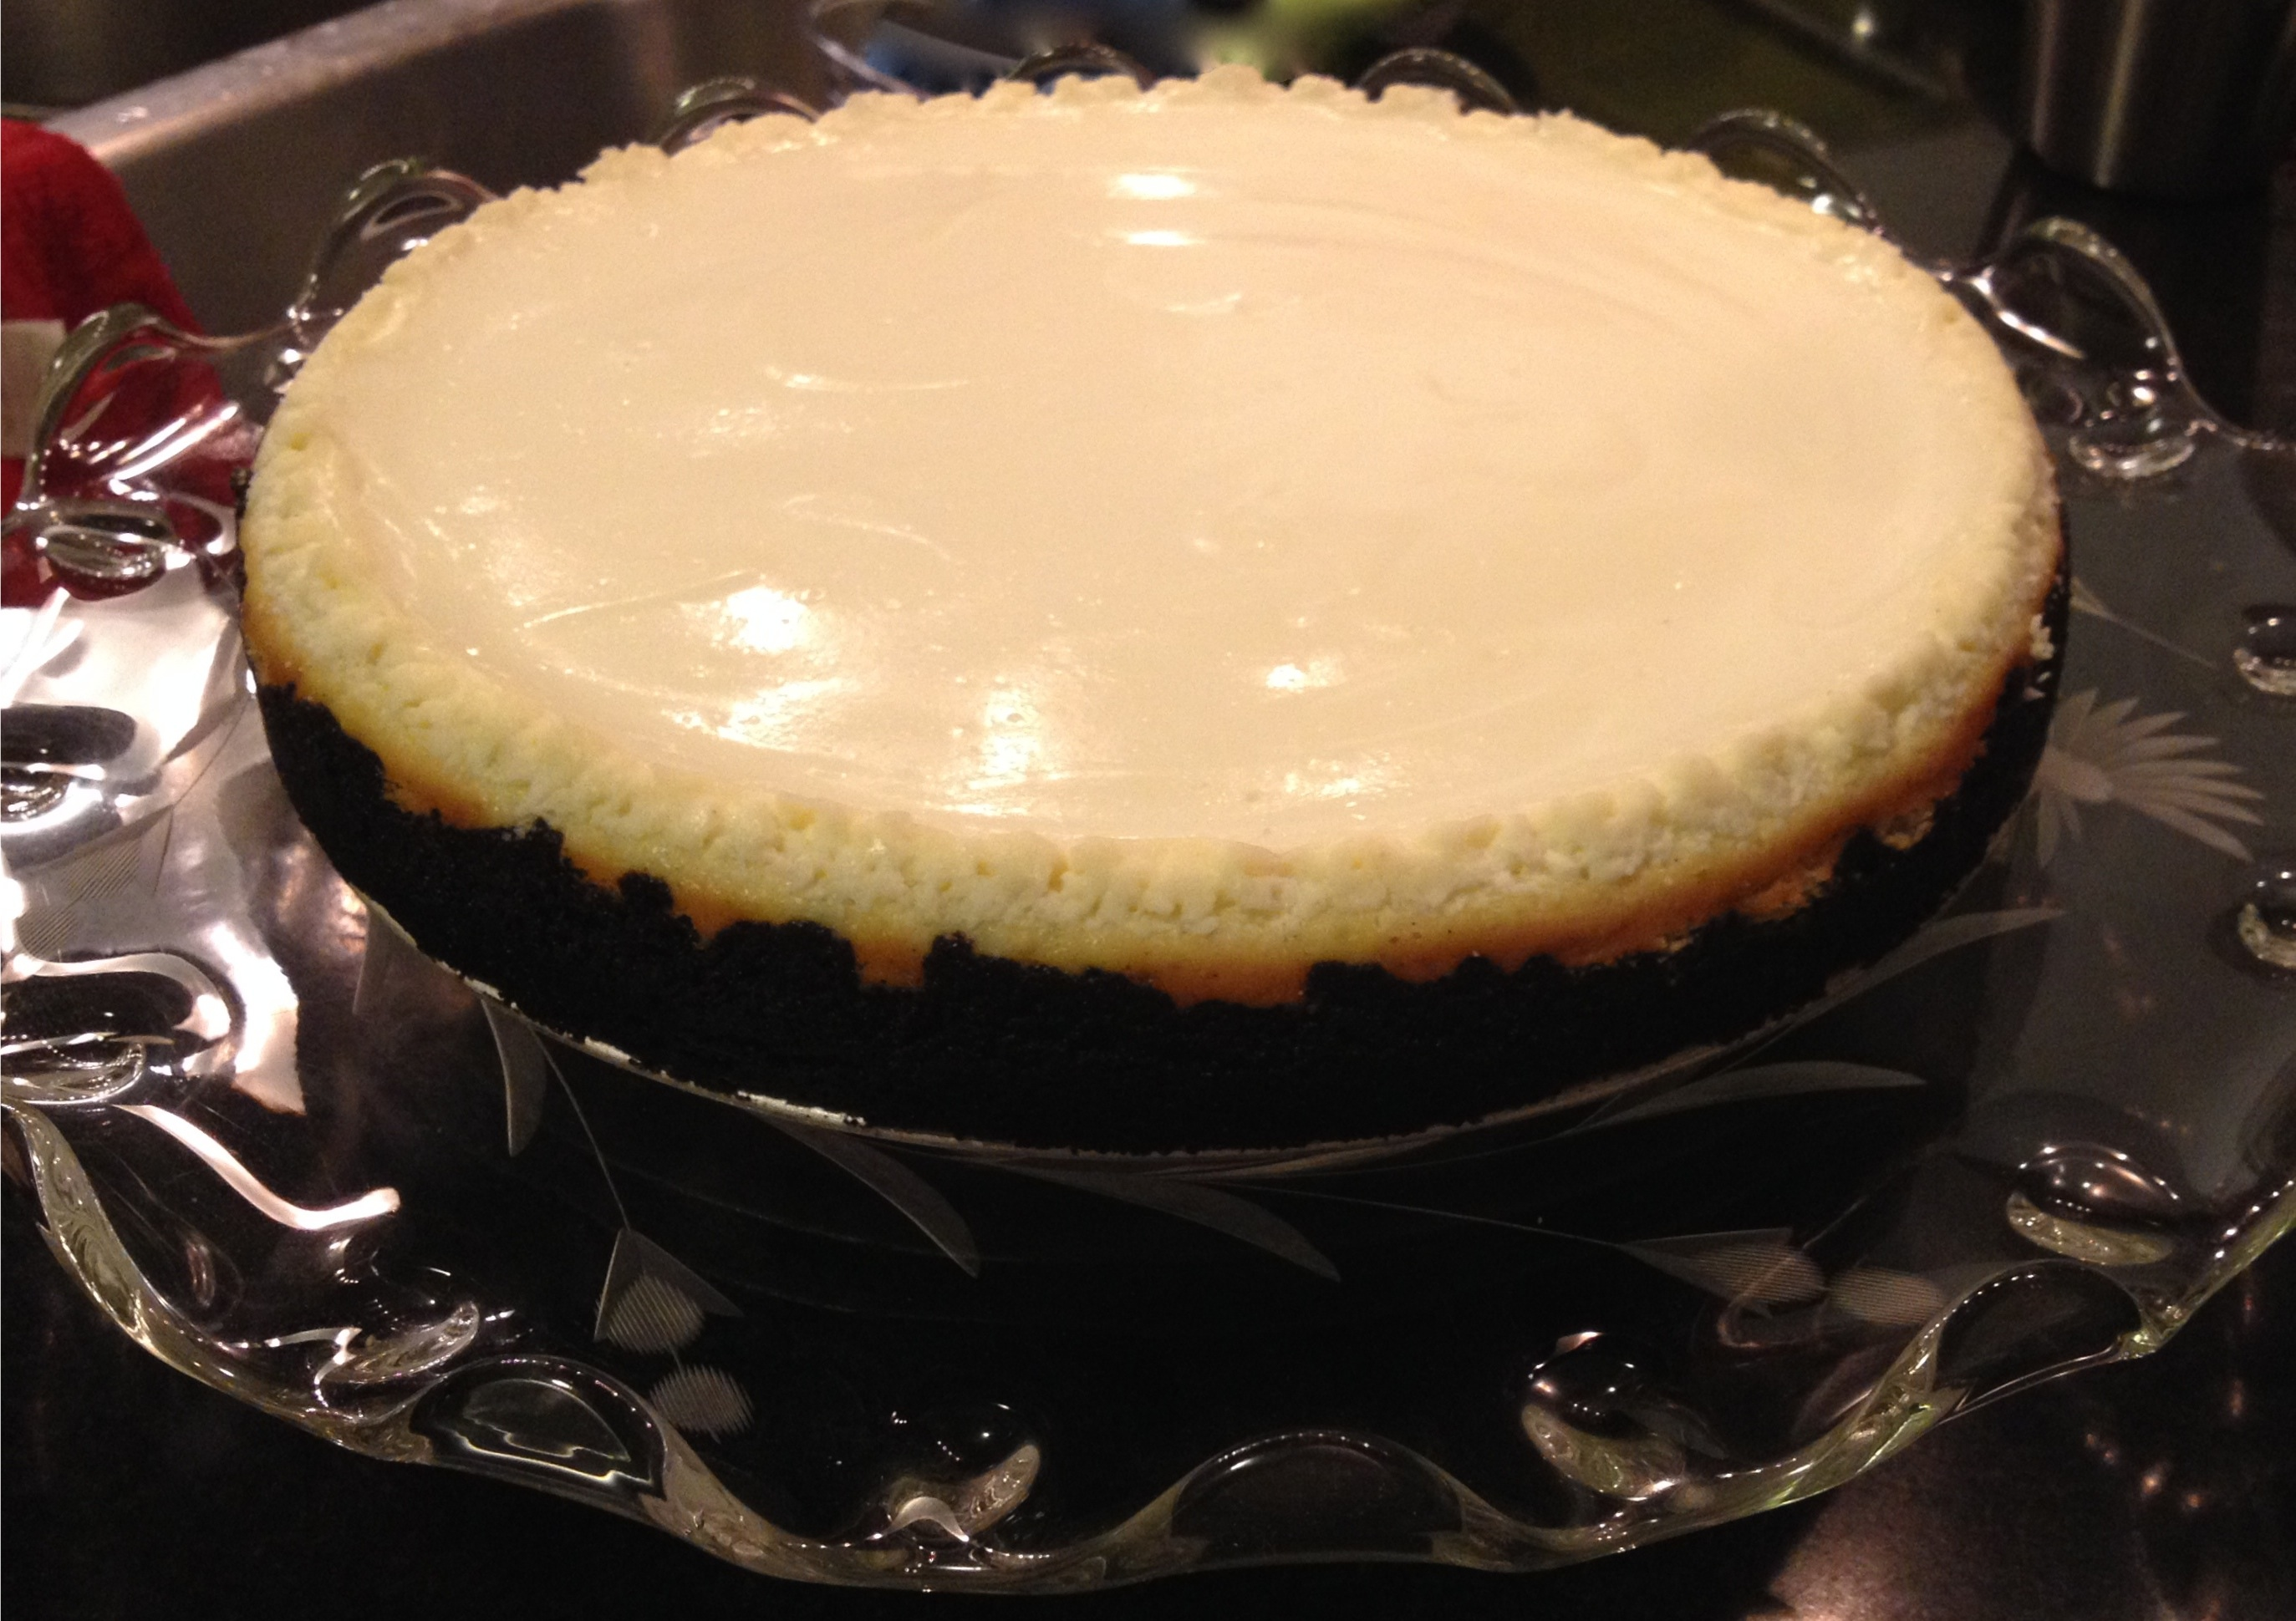 sour cream topped cheesecake